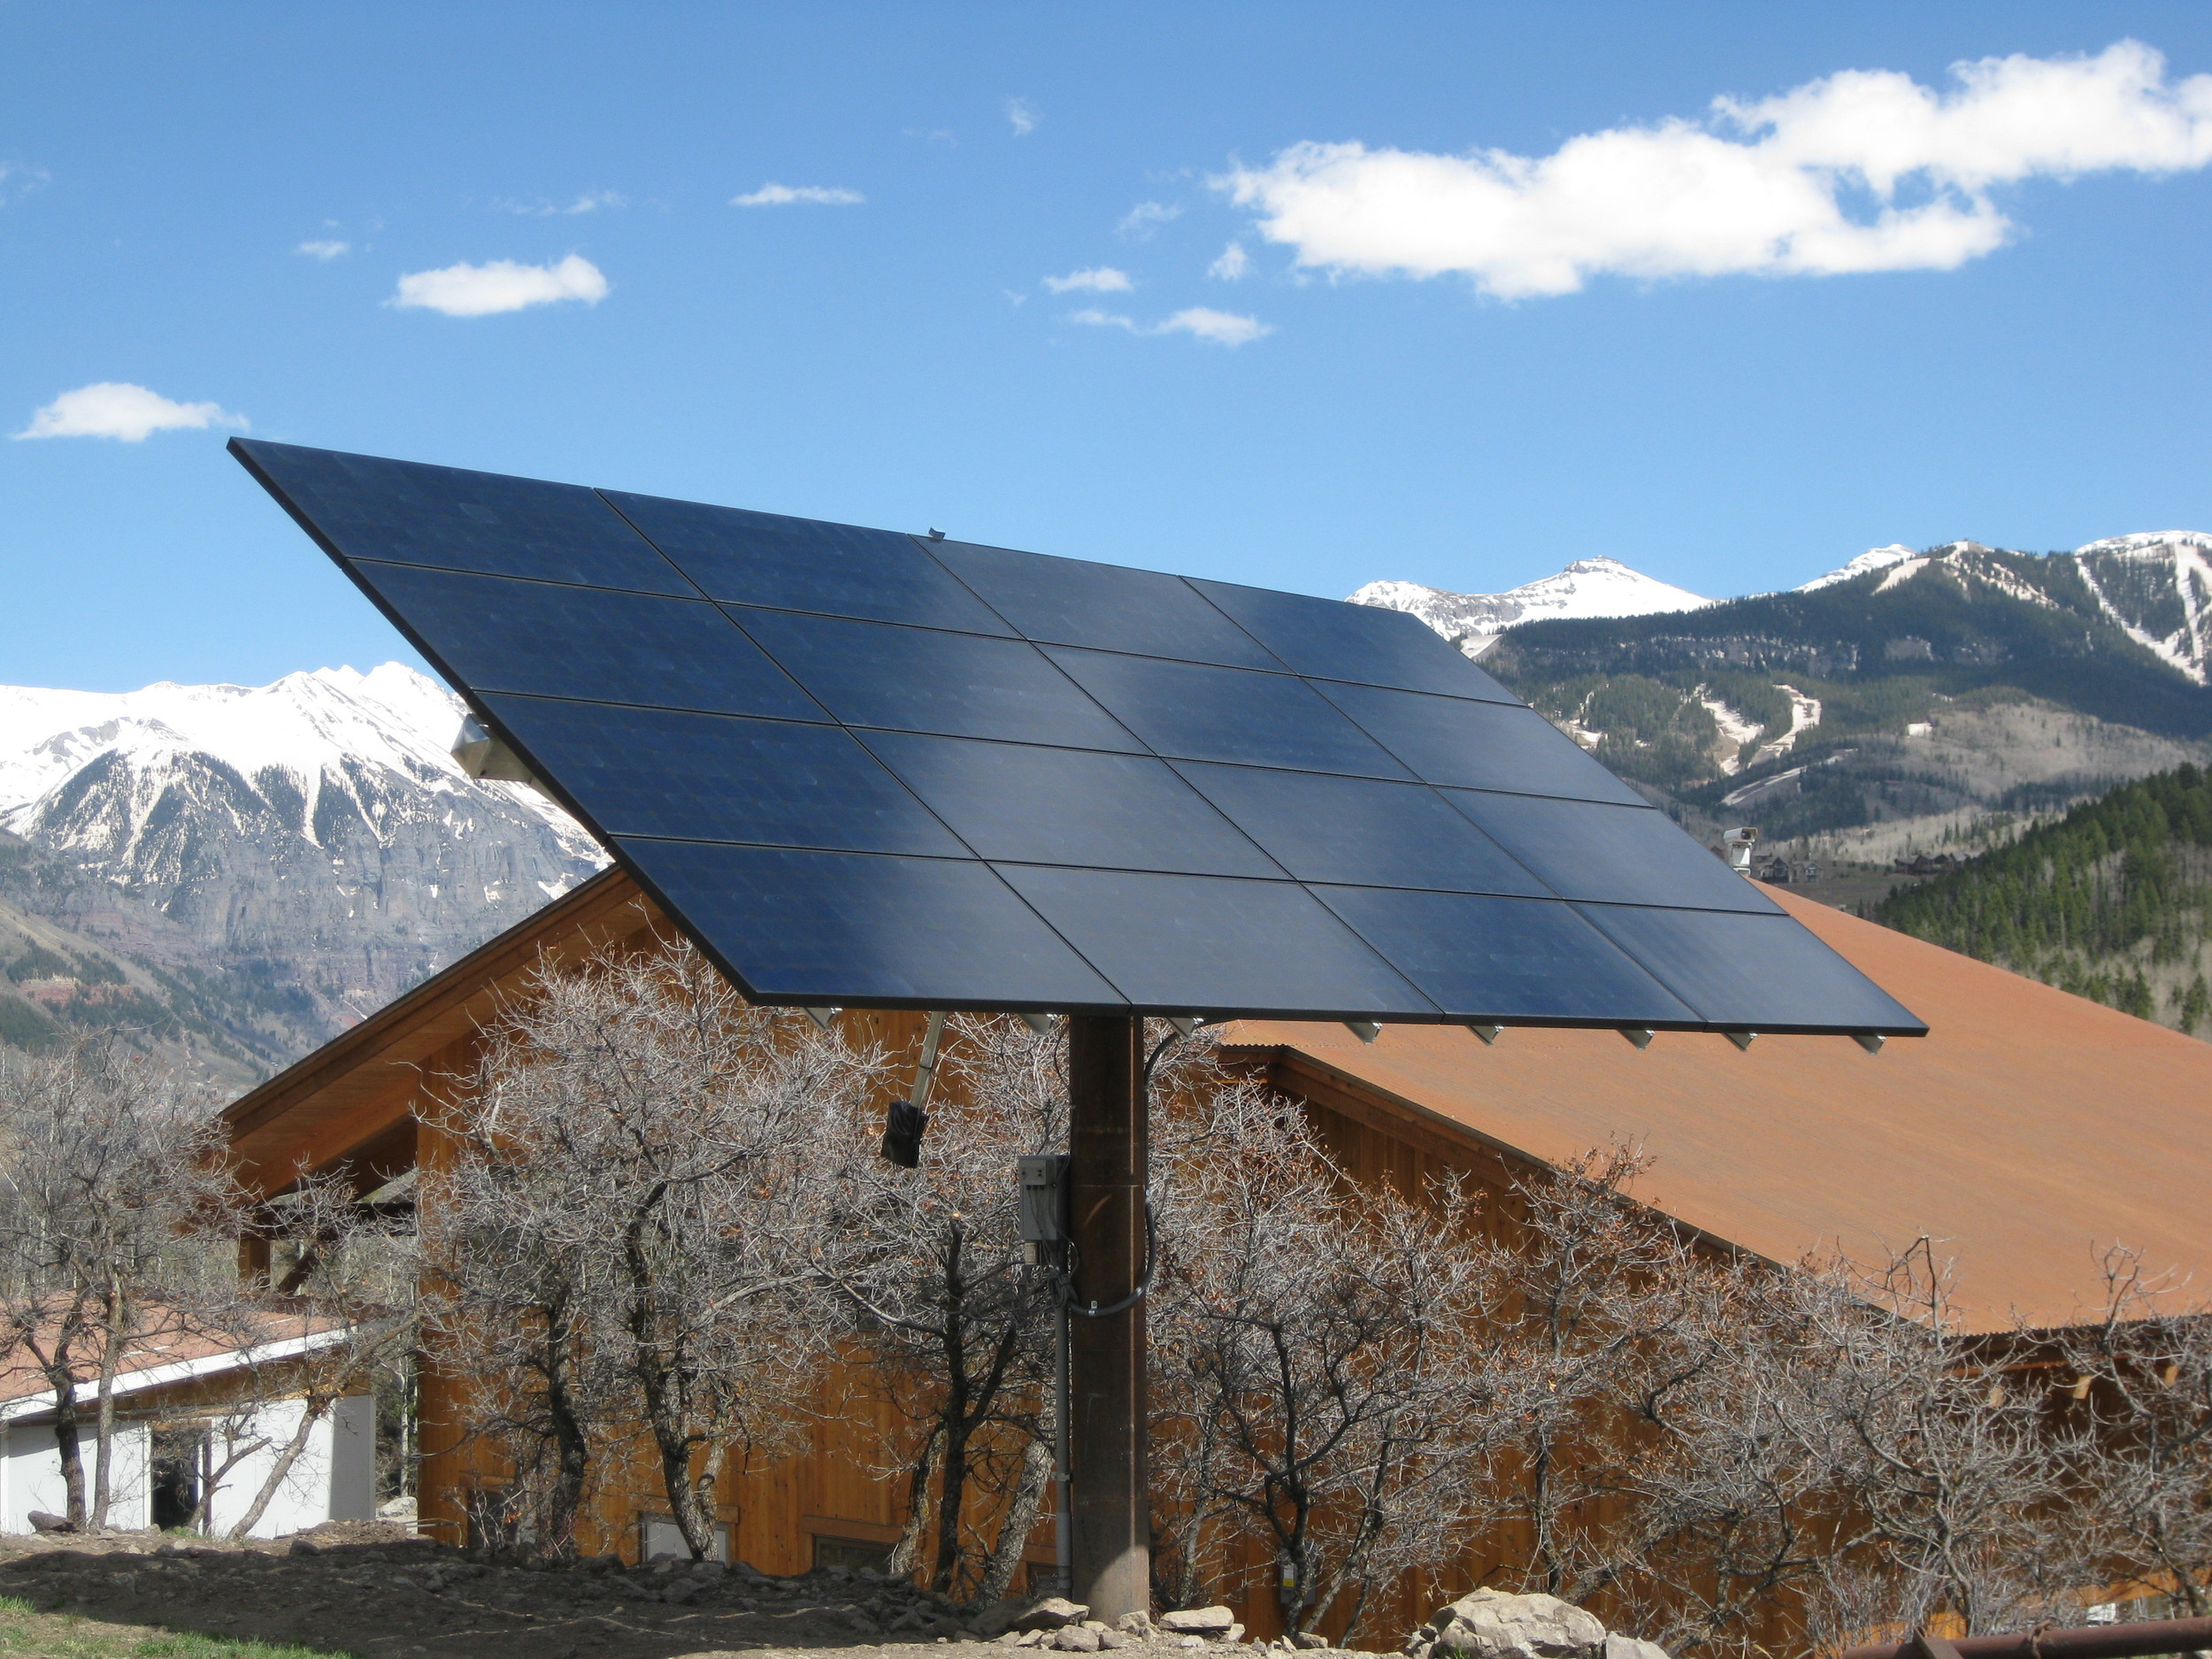 A solar power system designed by Alternative Power Enterprises